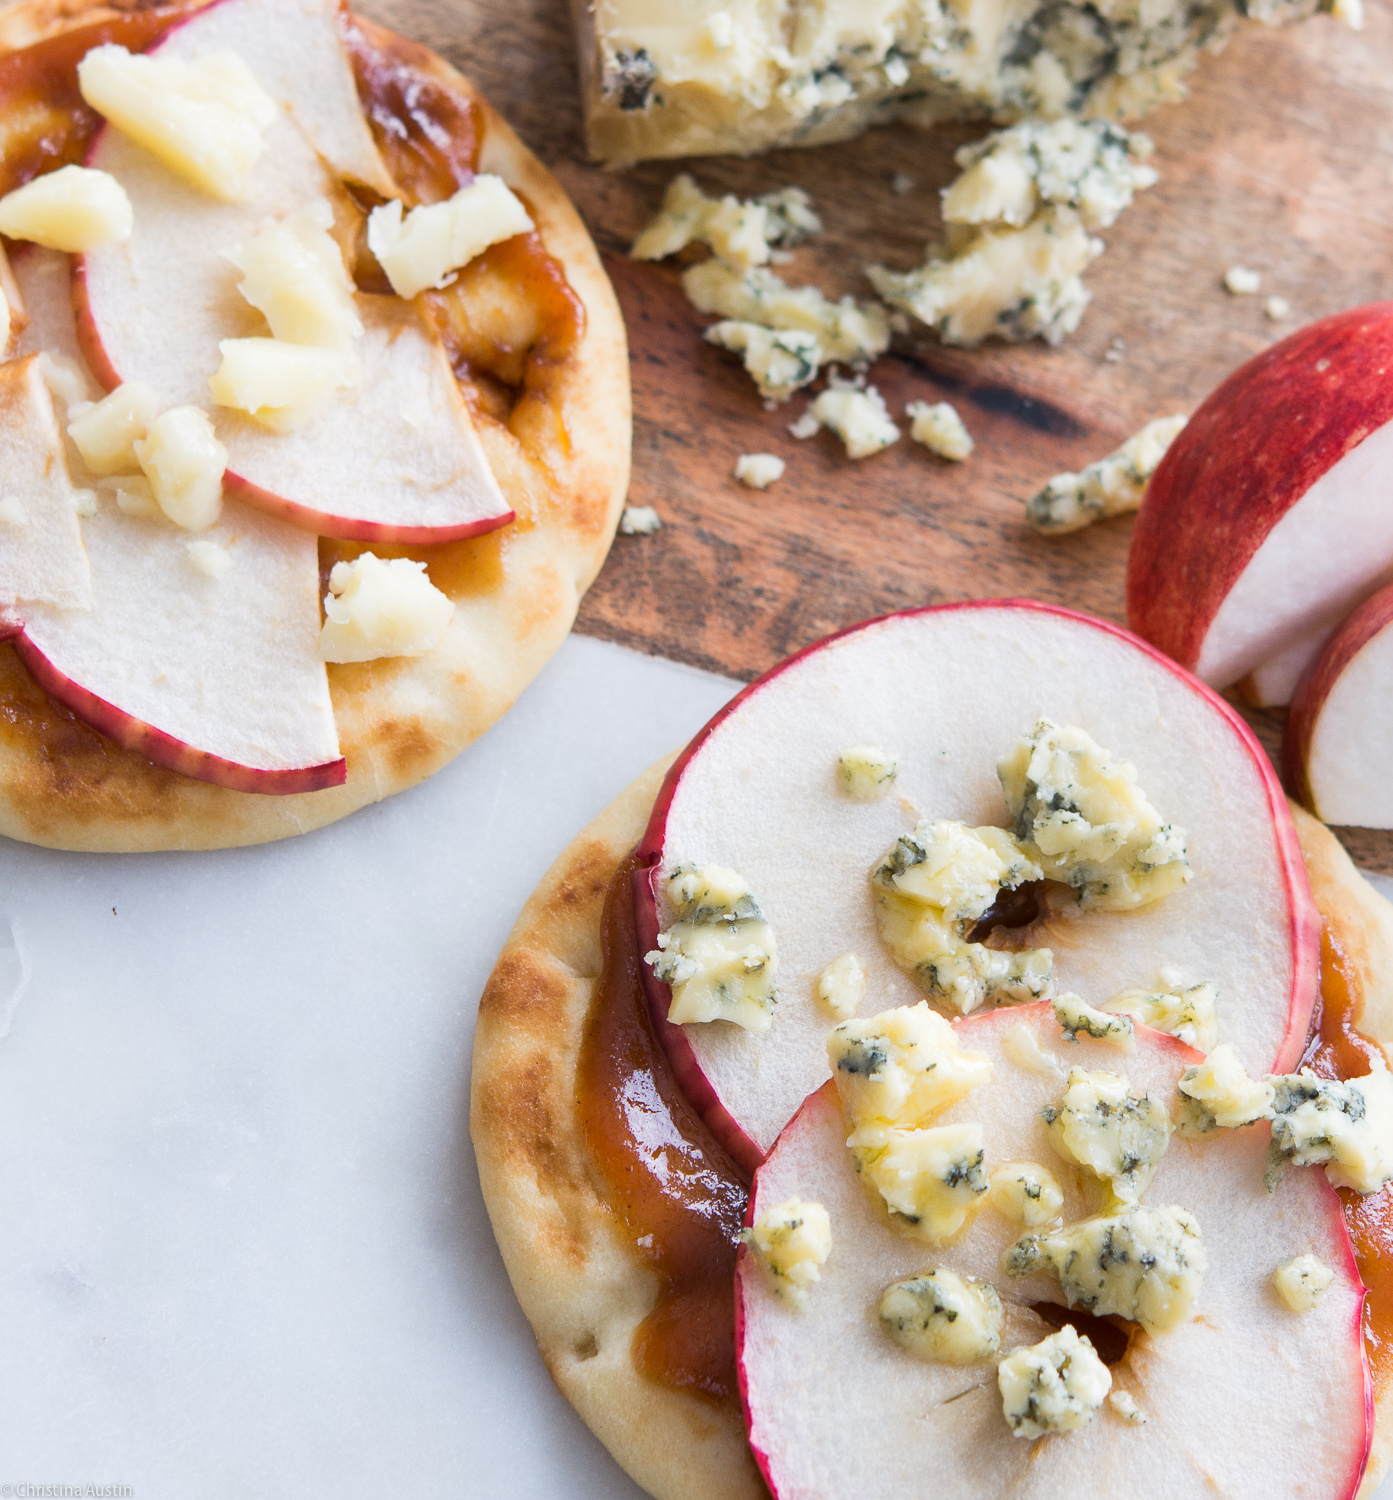 Naan flatbreads with apple butter and Dijon mustard topped with thinly sliced apples, Stilton cheese or cheddar cheese.